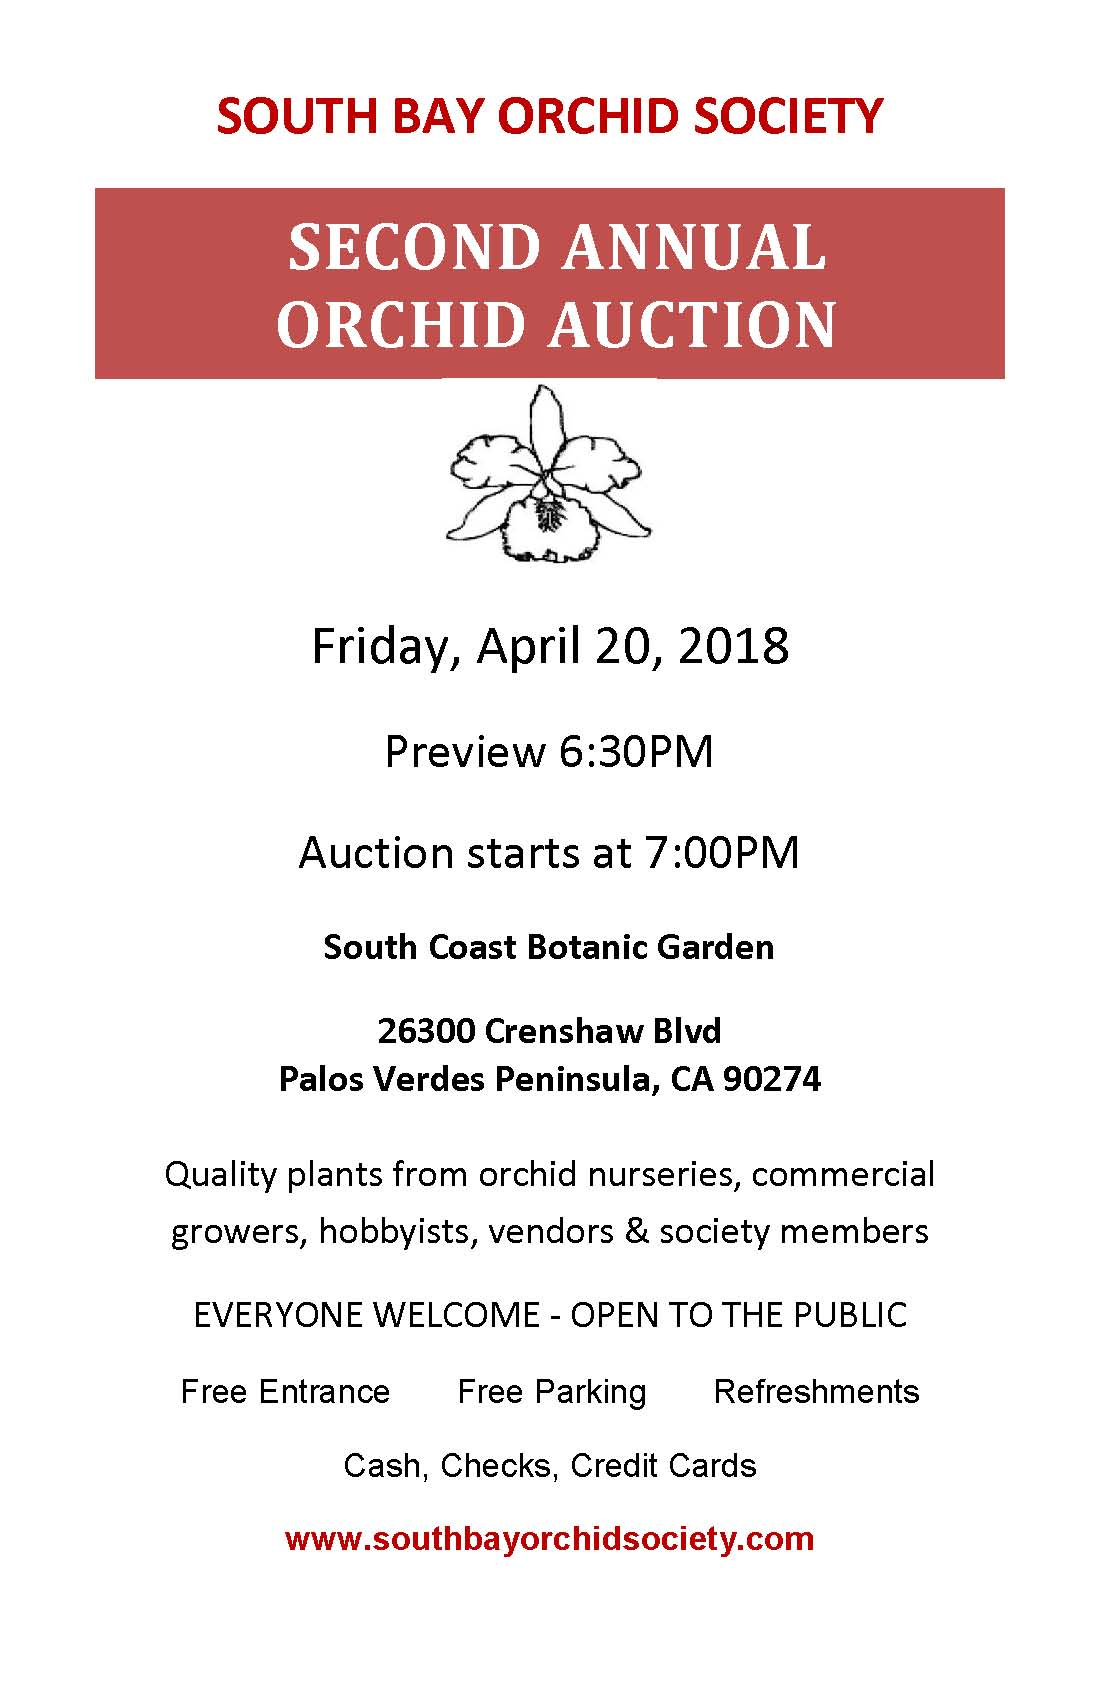 SBOS-Auction-2018